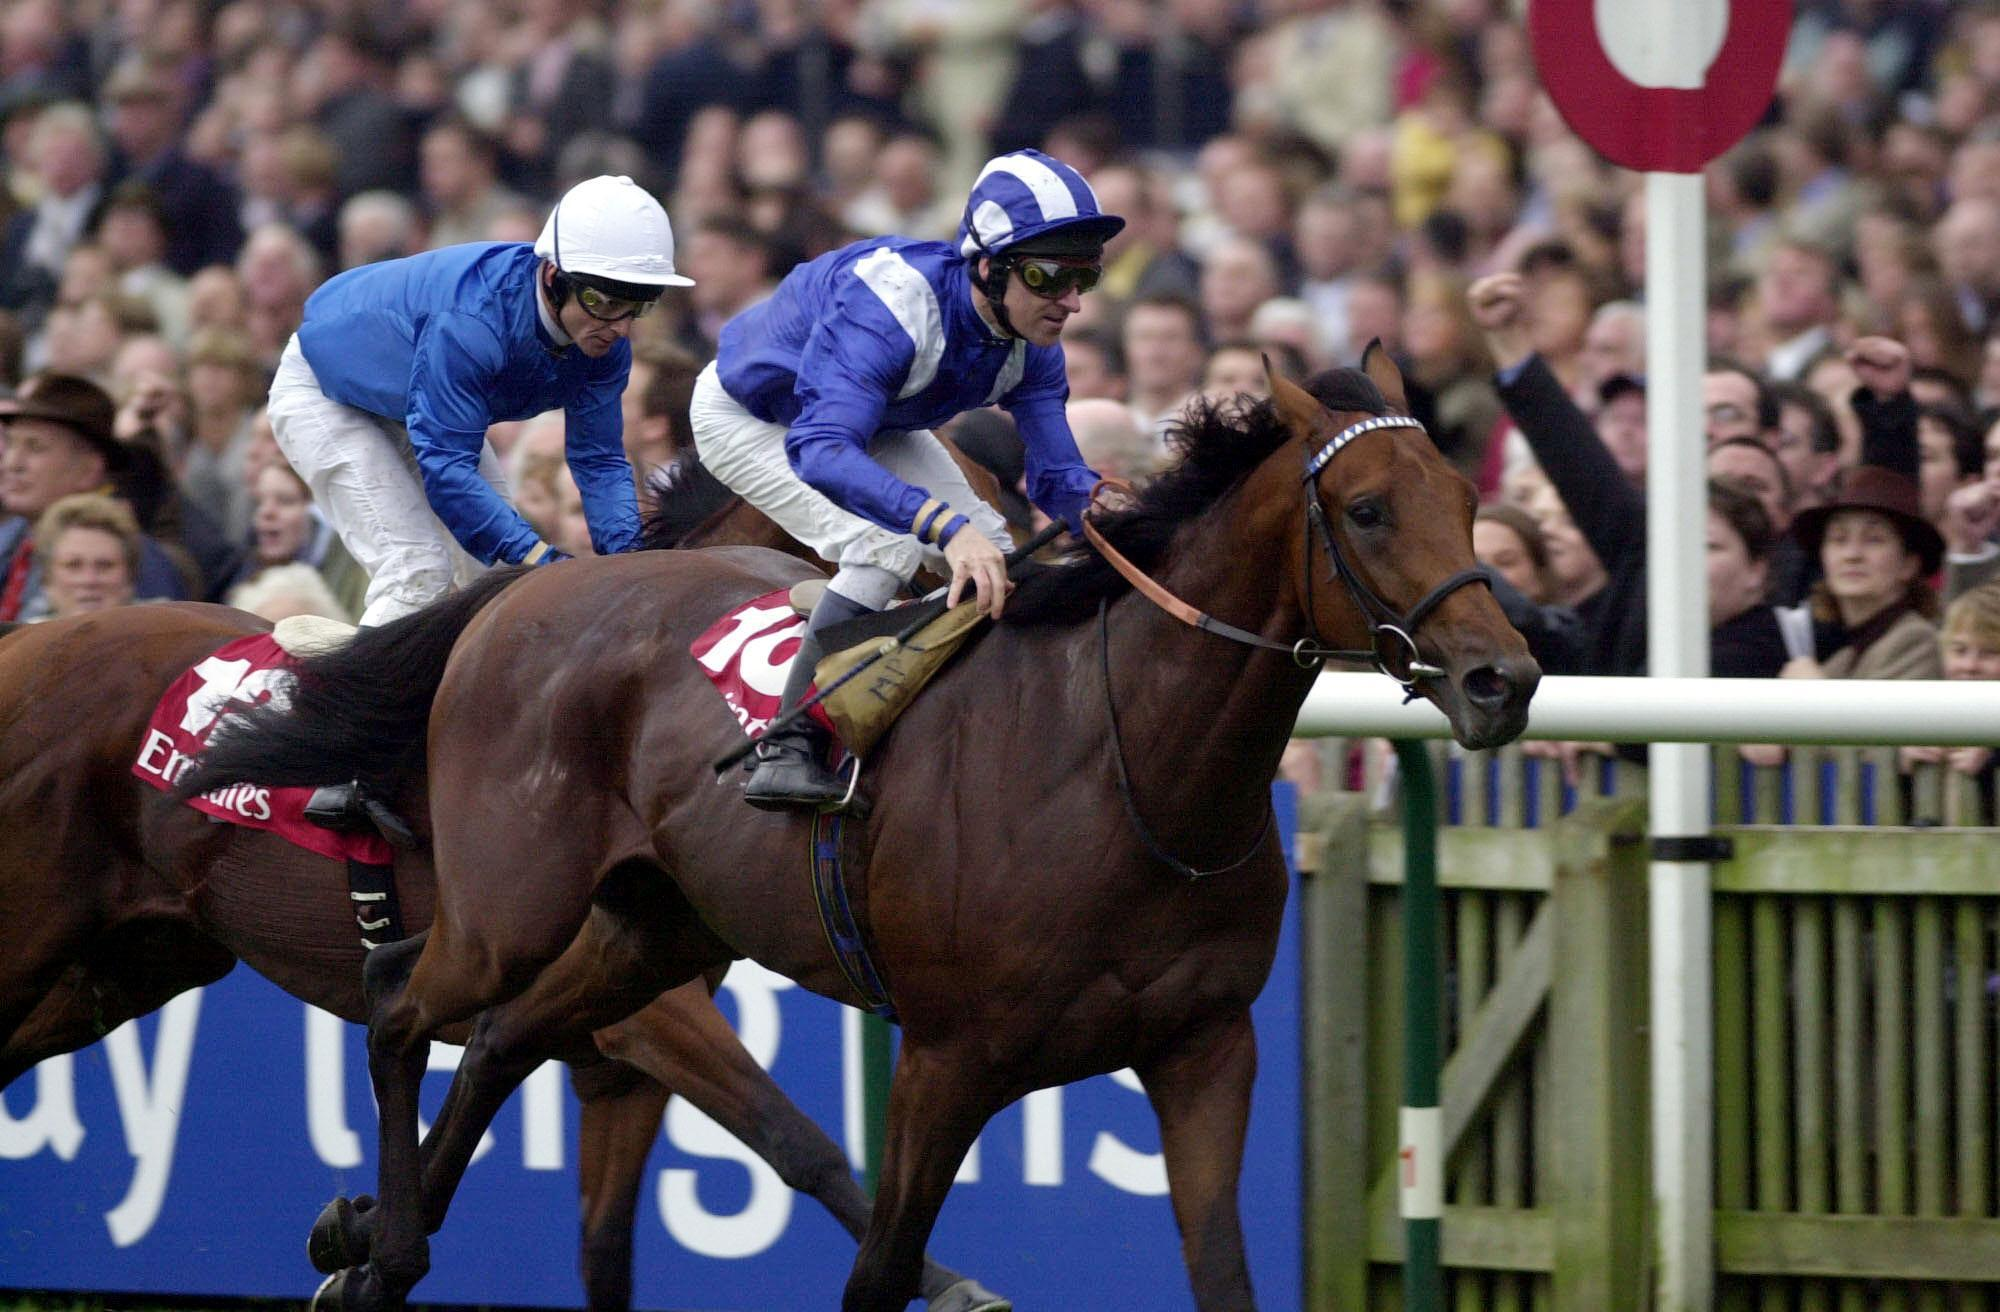 Nayef was a superstar racehorse for Marcus Tregoning